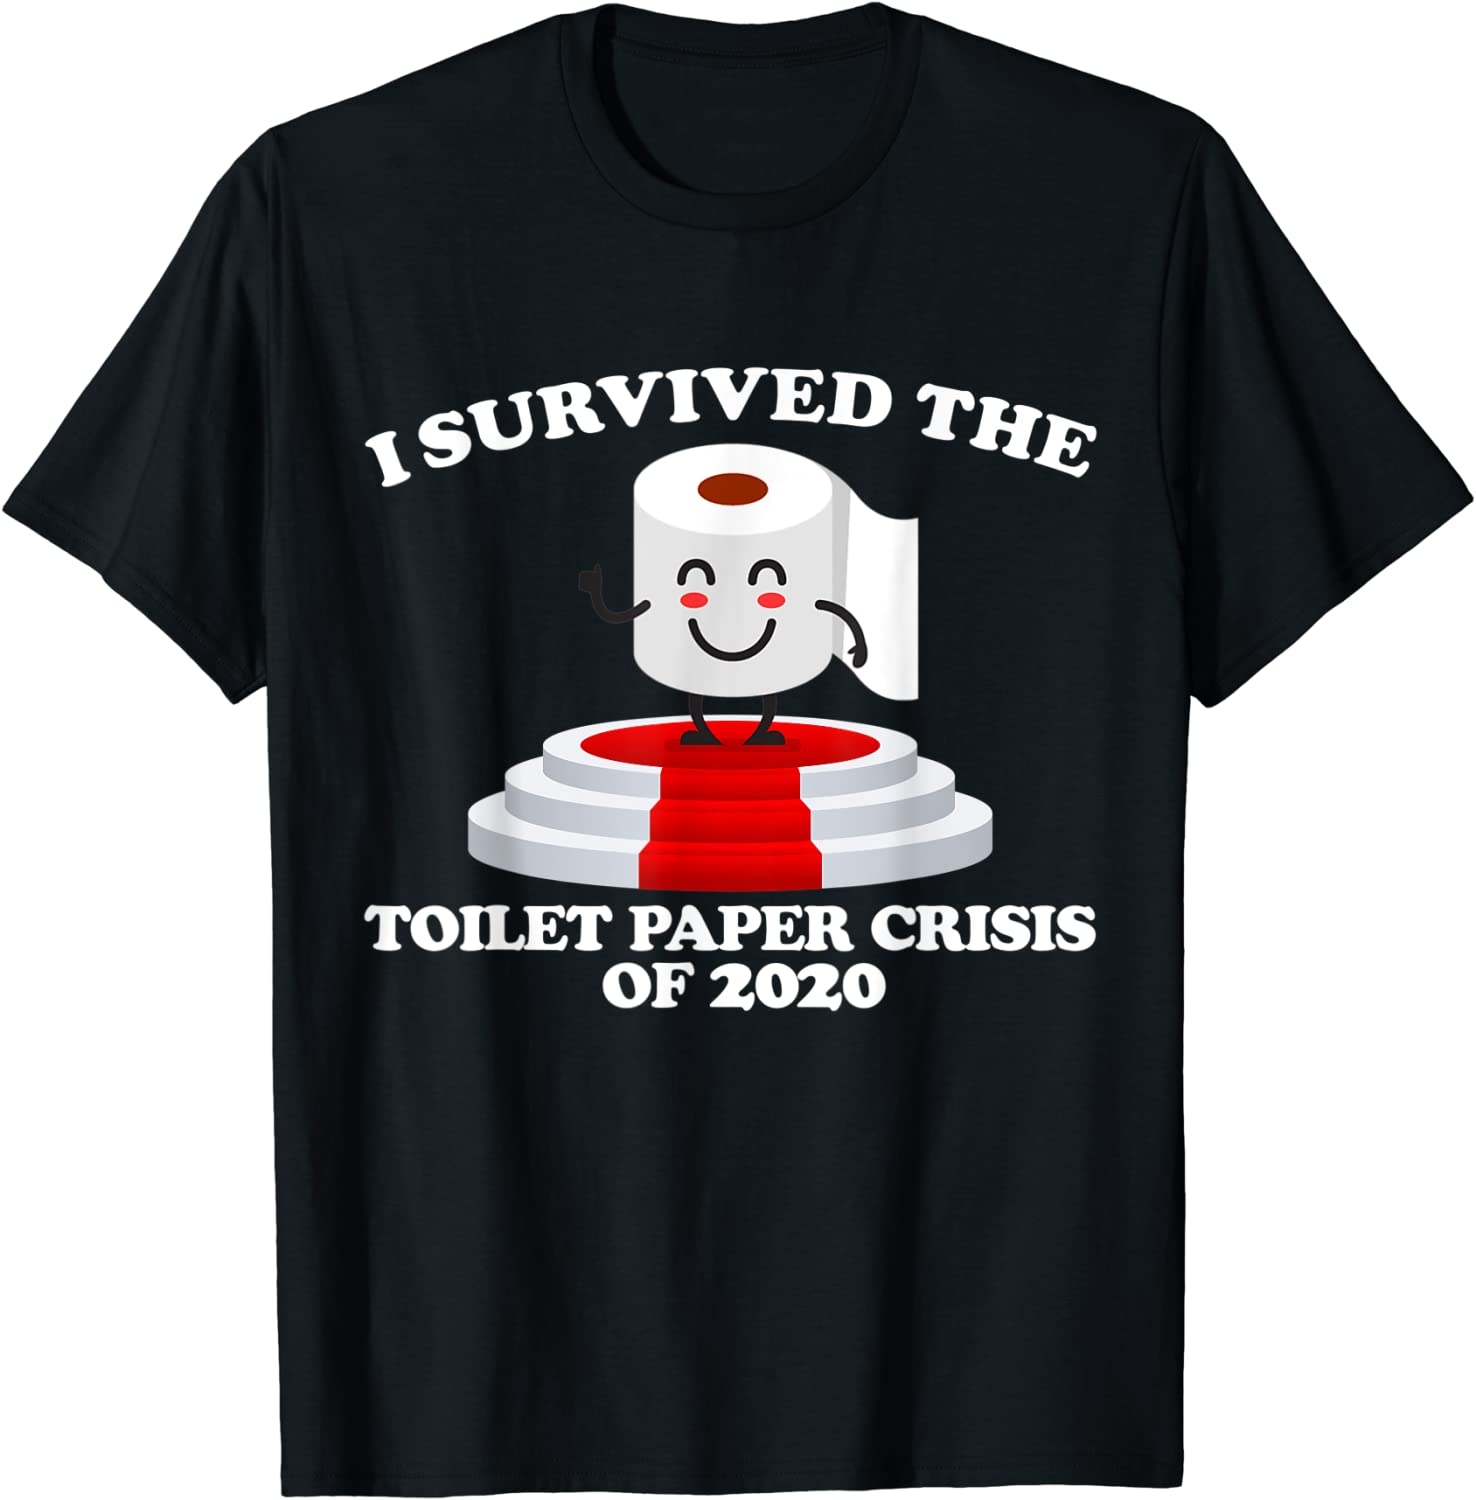 I survived the toilet paper shortage of 2020 T-shirt